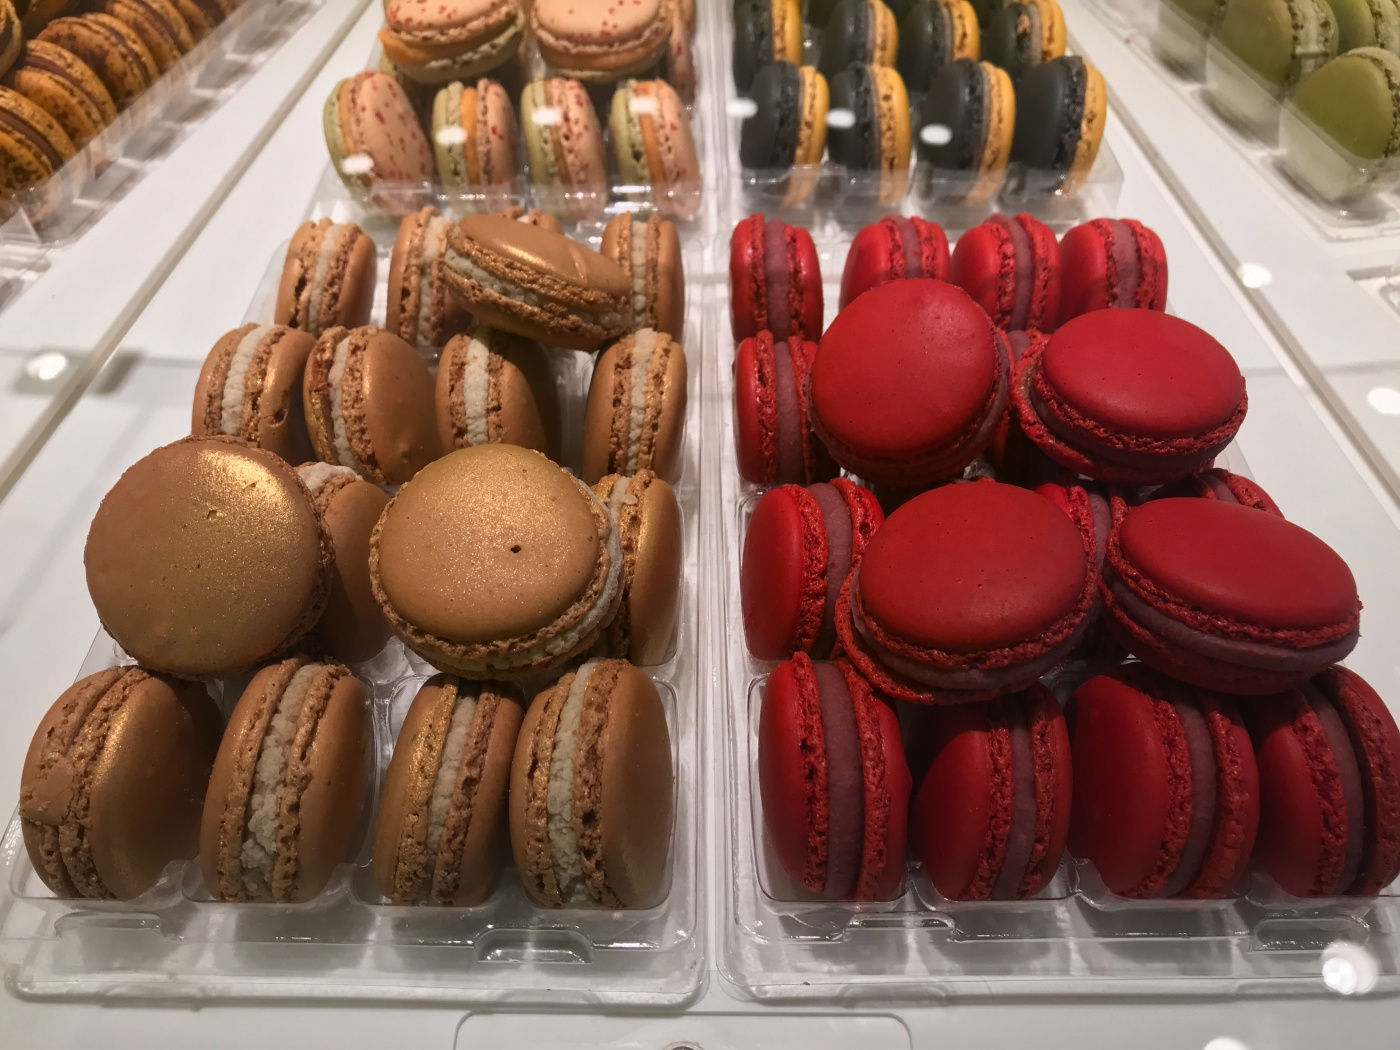 Pretty Macarons at Pierre Hermé in Paris, France